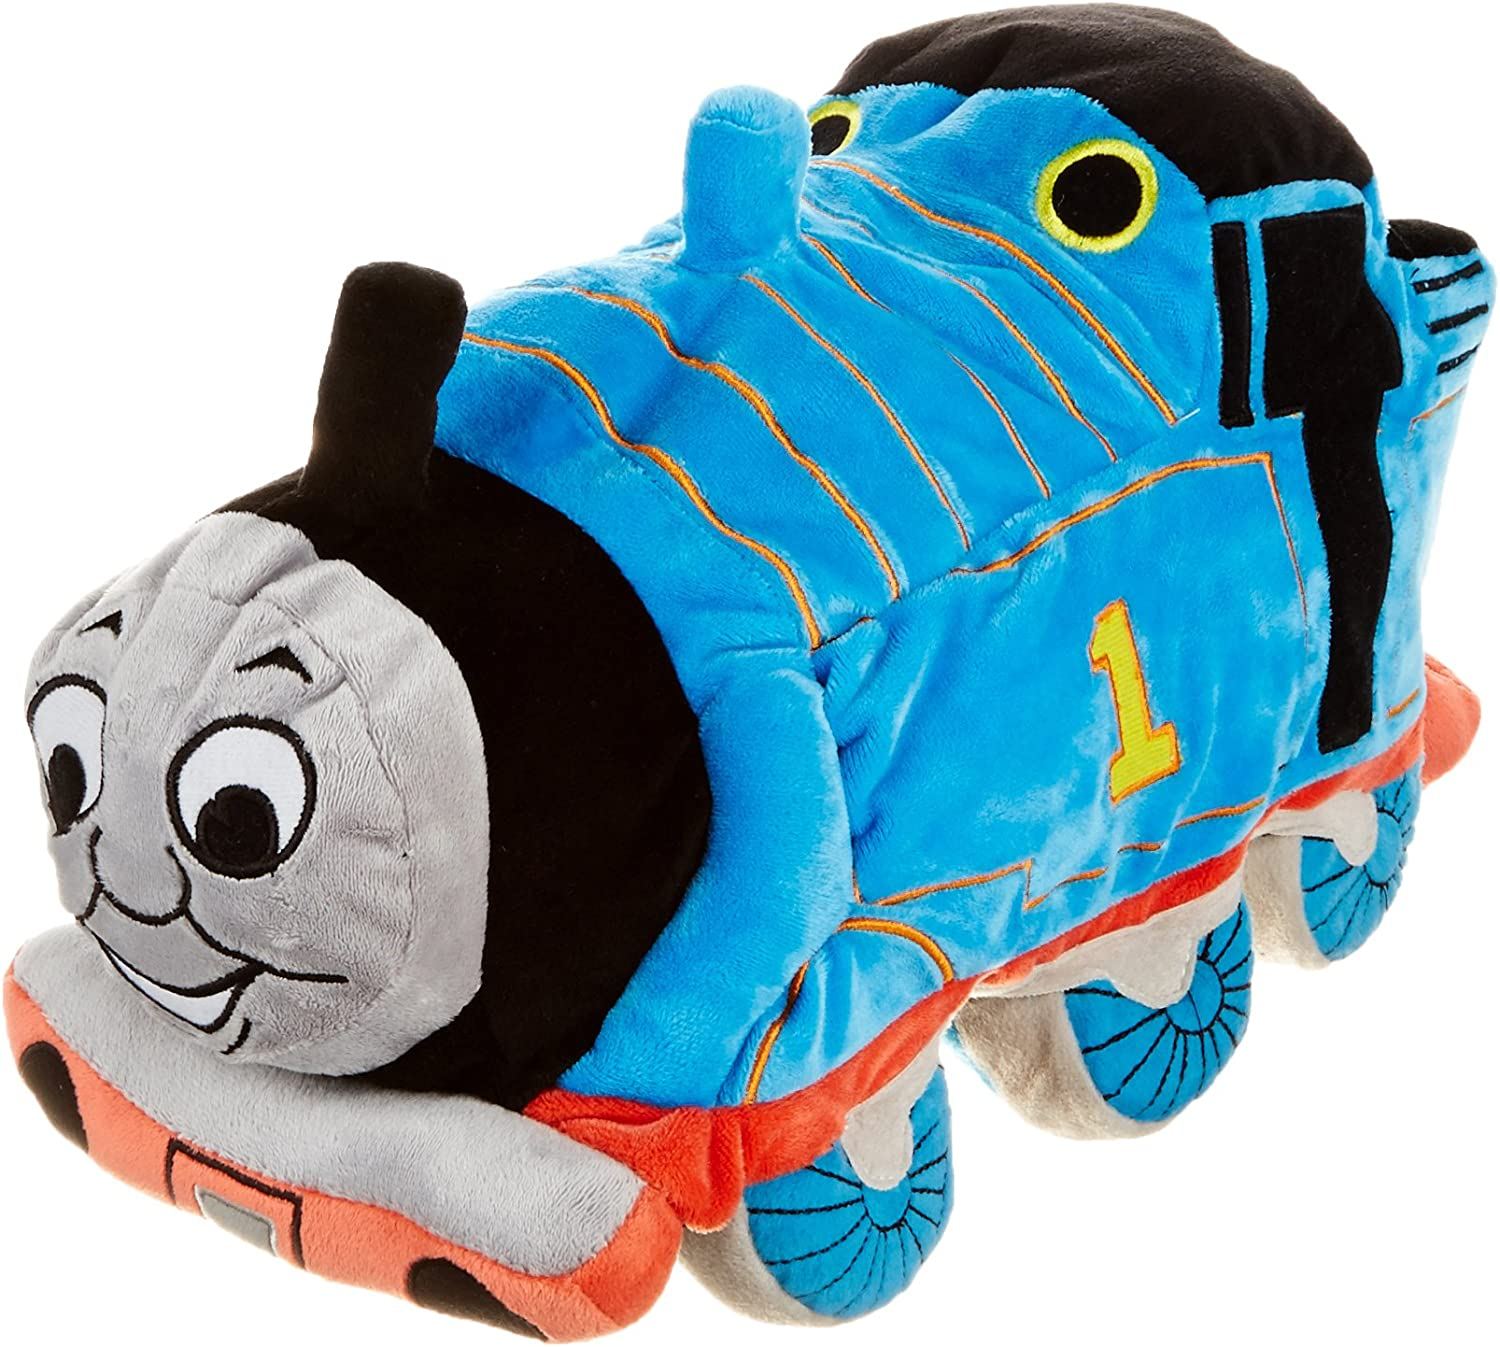 Jay Franco Thomas & Friends Plush Stuffed Toddler Pillow Buddy - Kids Super Soft Polyester Microfiber, 15 inch (Official Mattel Product), Thomas